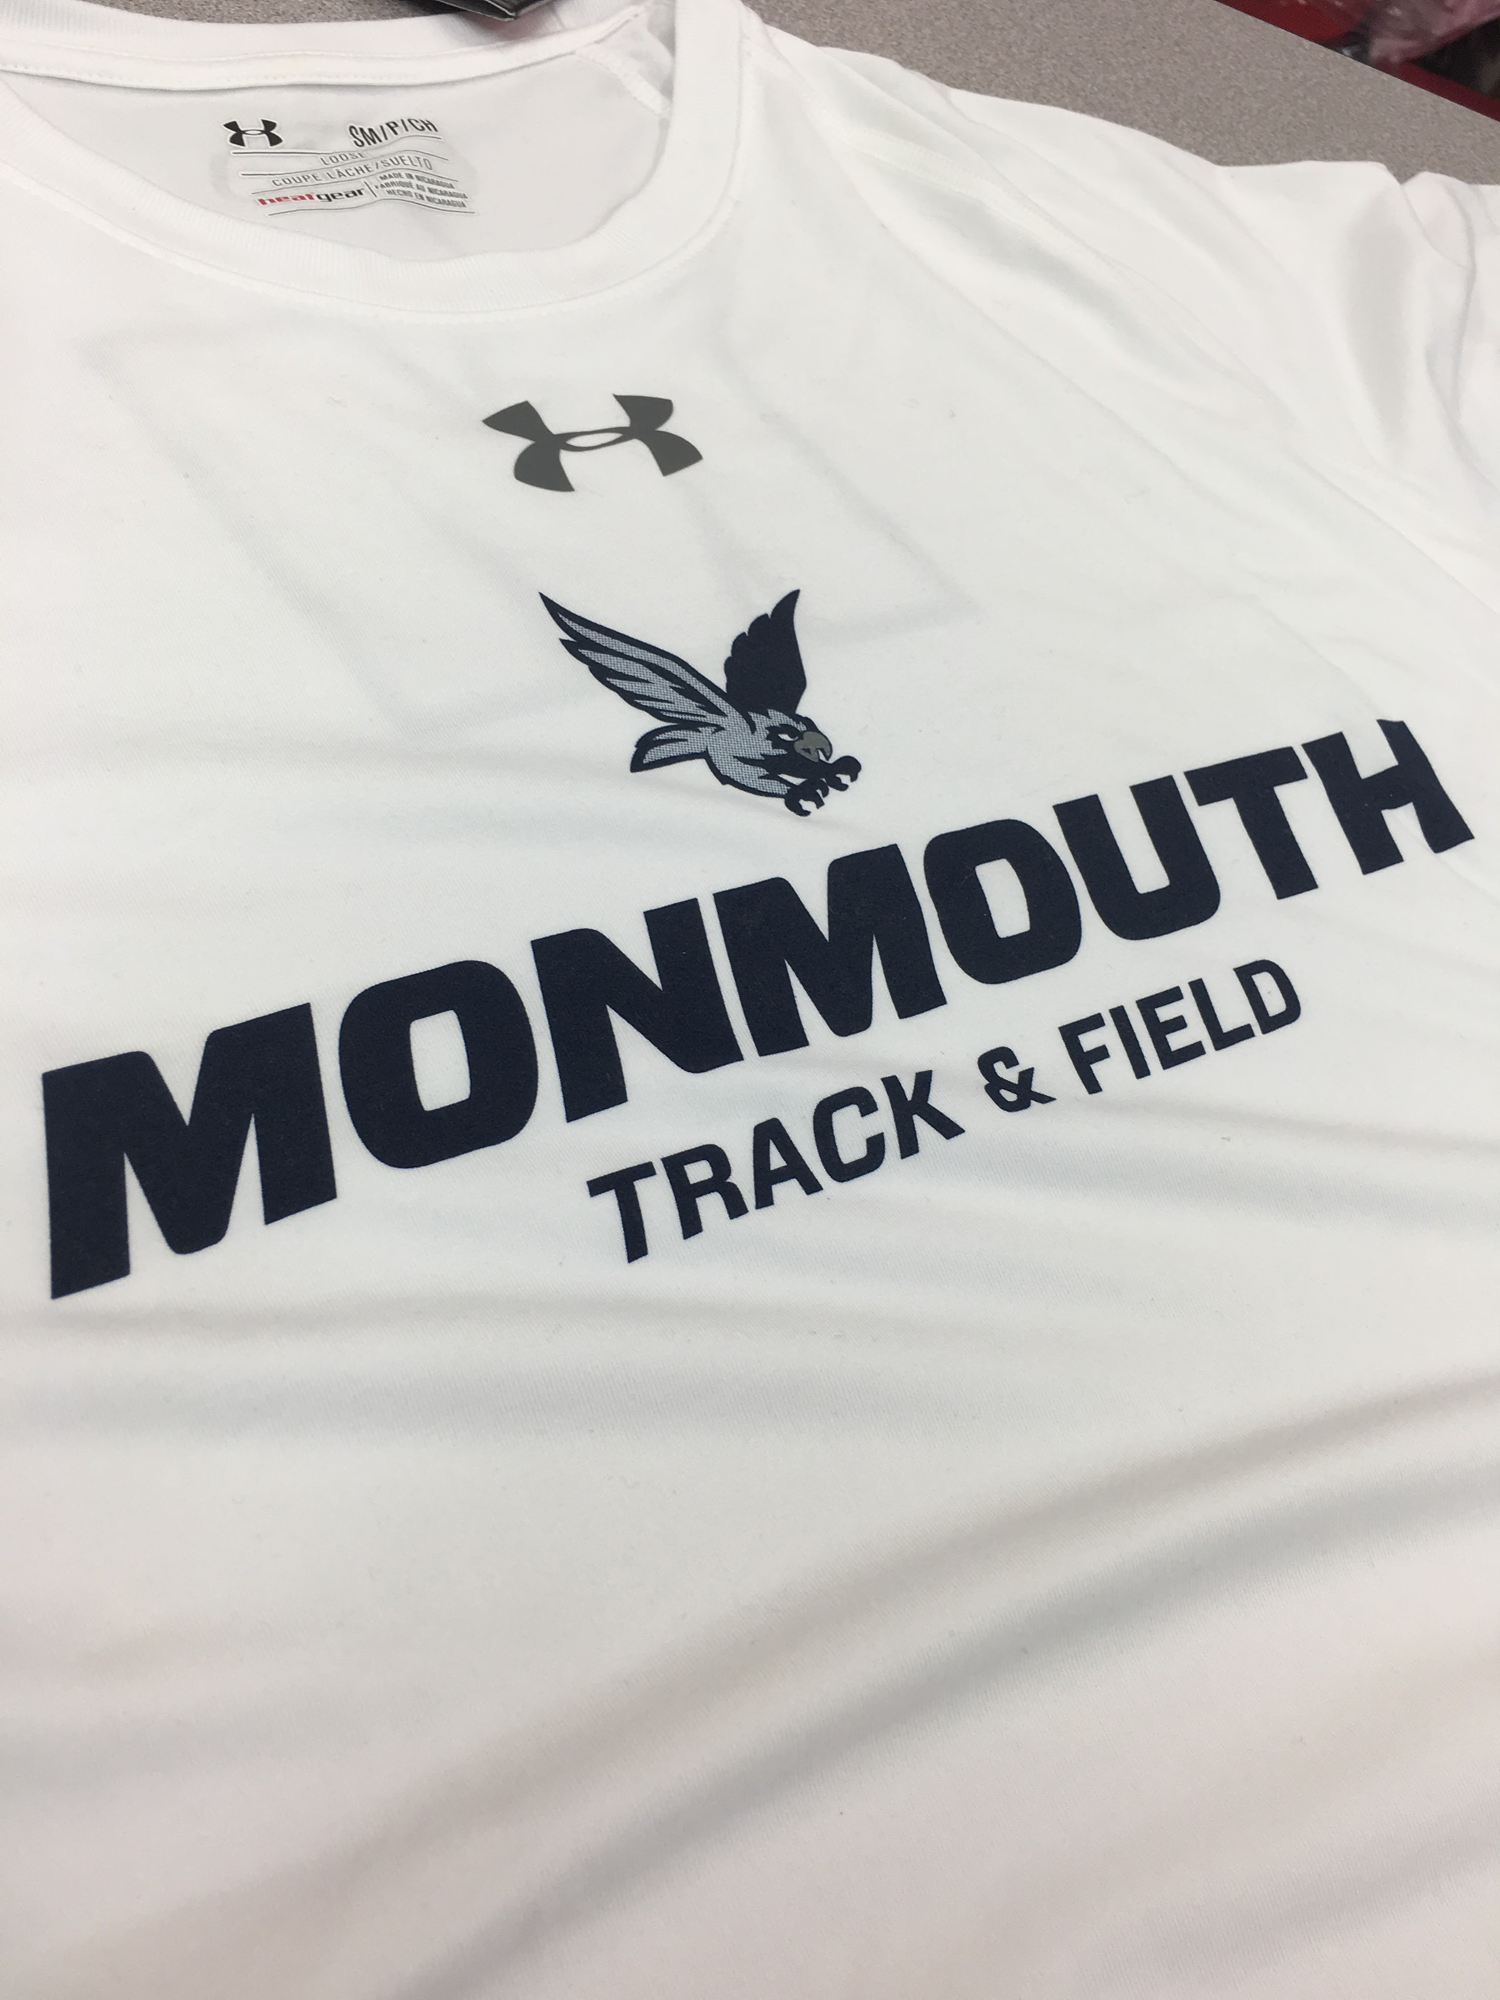 monmouth-track-and-field-t-shirt-6-9-17.png